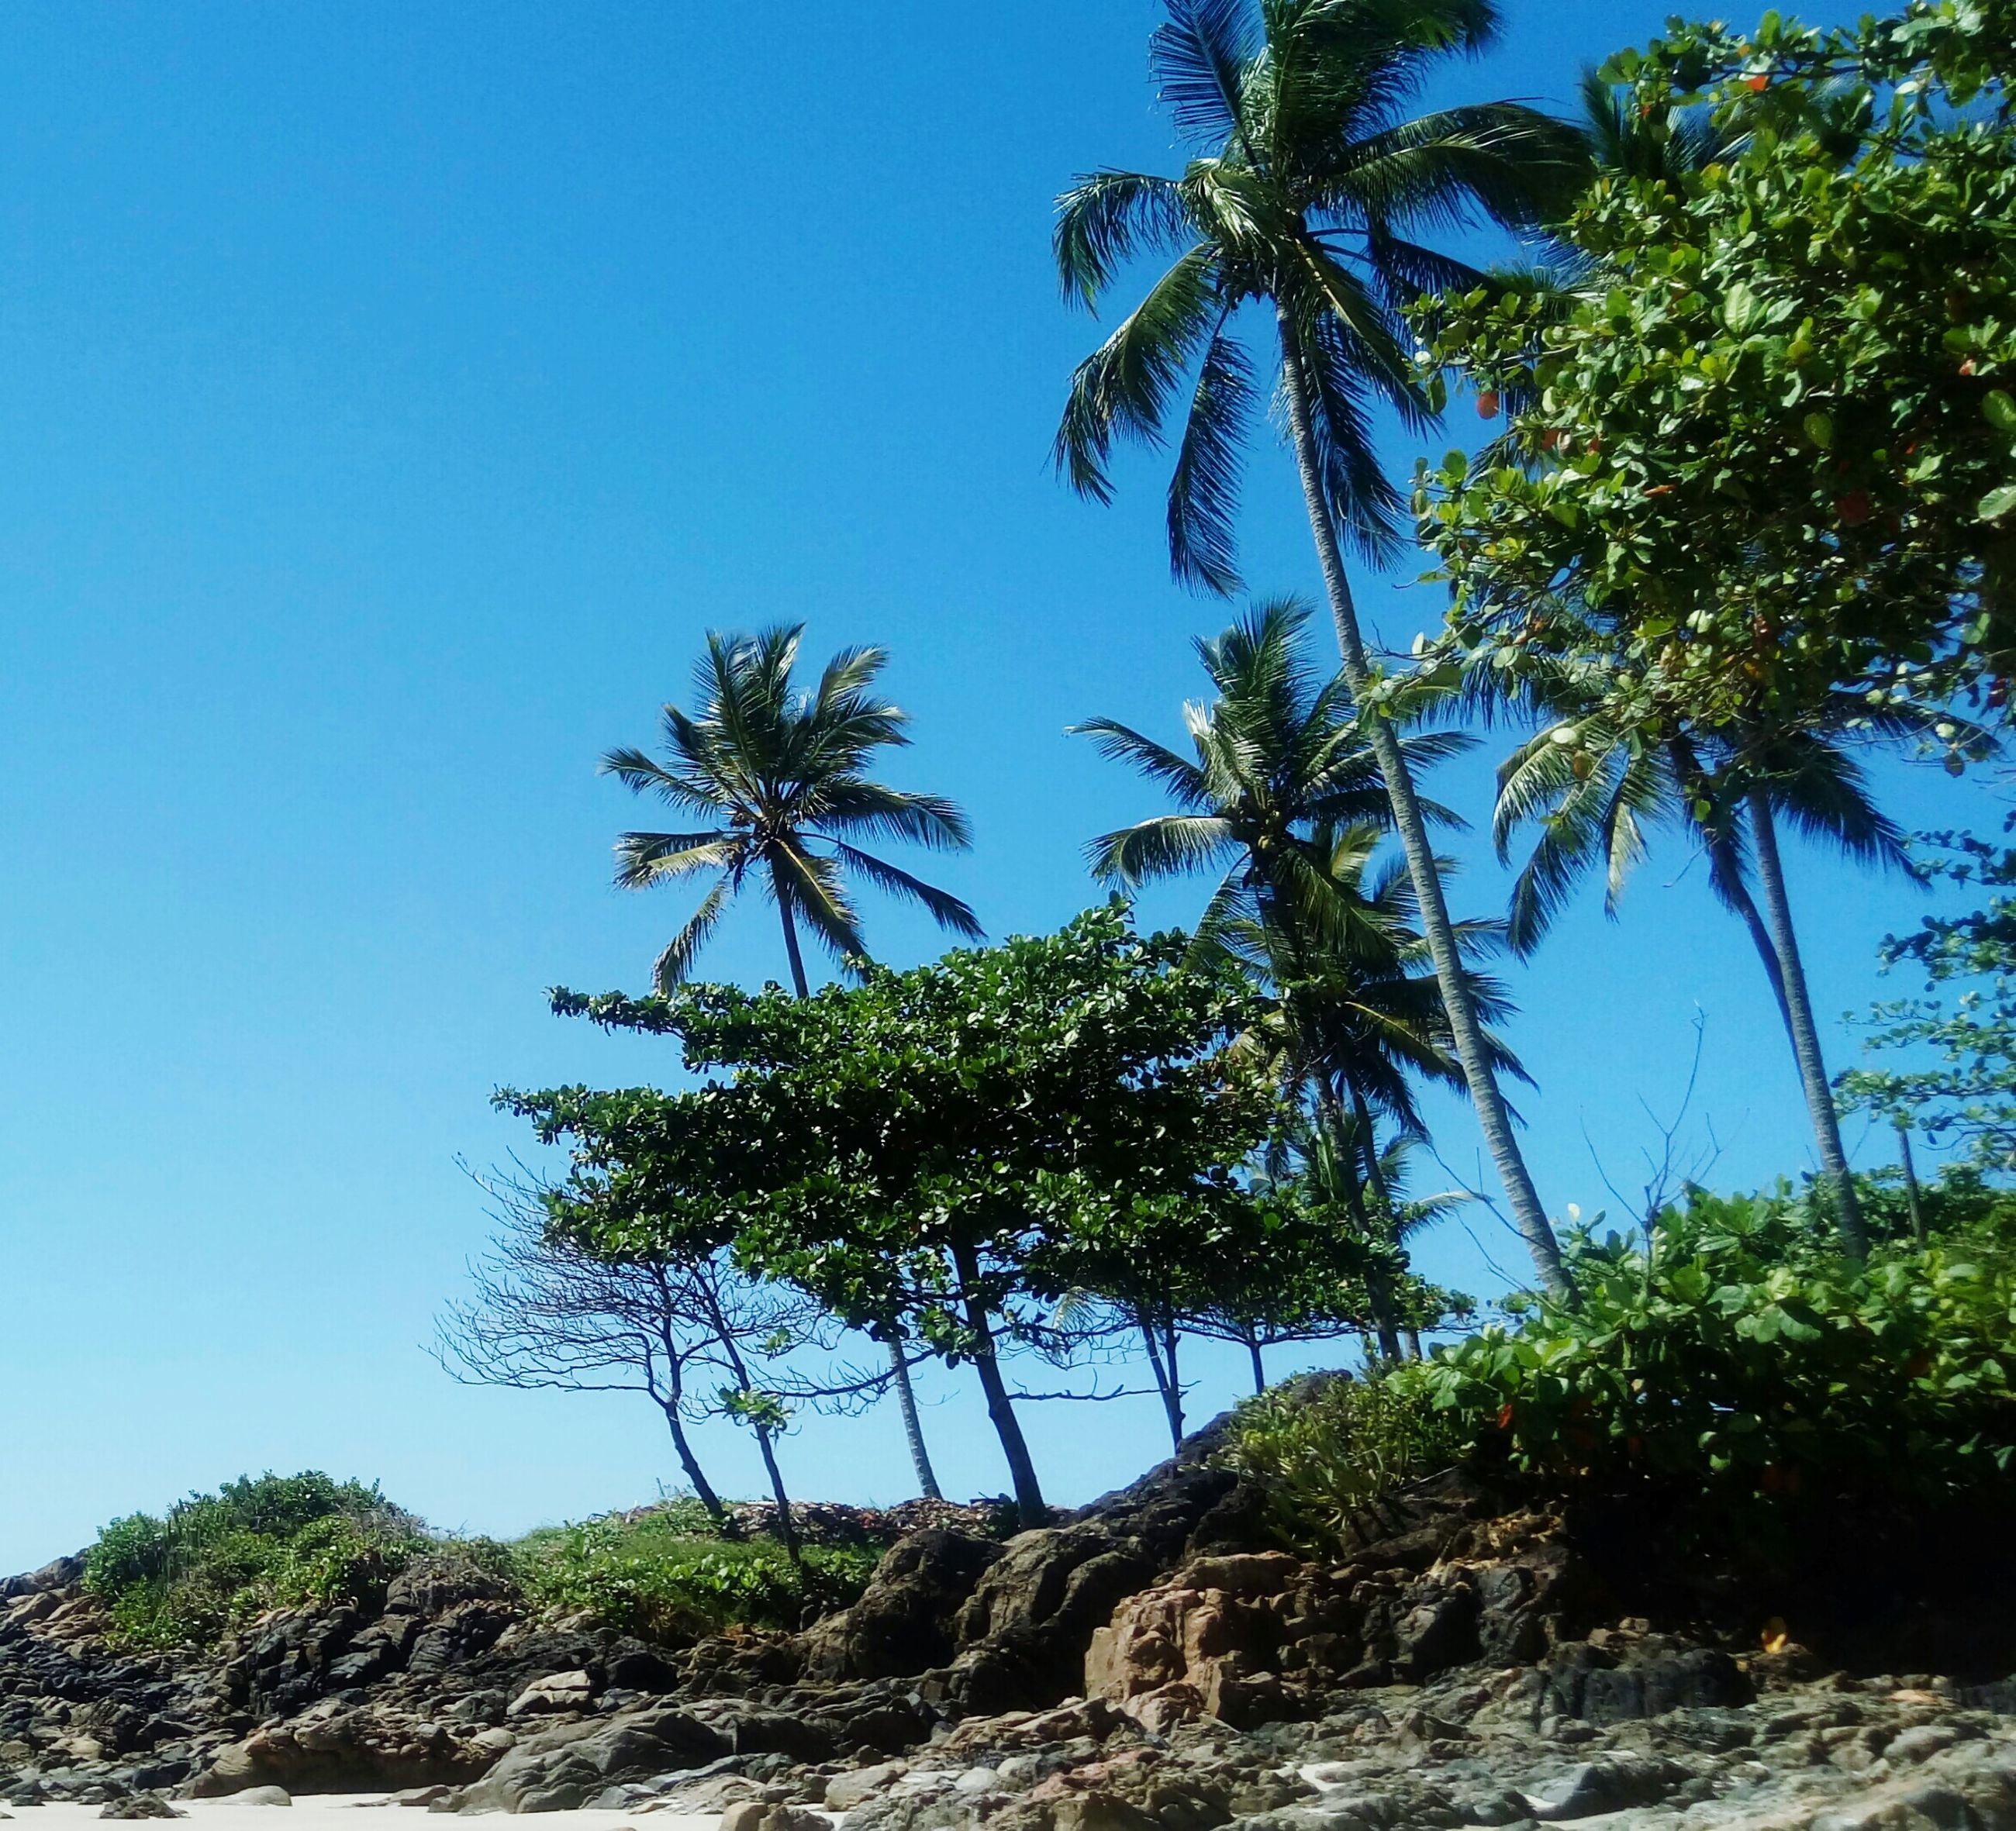 tree, clear sky, blue, tranquil scene, tranquility, palm tree, scenics, growth, low angle view, rock - object, tree trunk, solitude, beauty in nature, nature, non-urban scene, remote, outdoors, day, green color, mountain, branch, countryside, green, coconut palm tree, single tree, no people, tall - high, joshua tree, rock formation